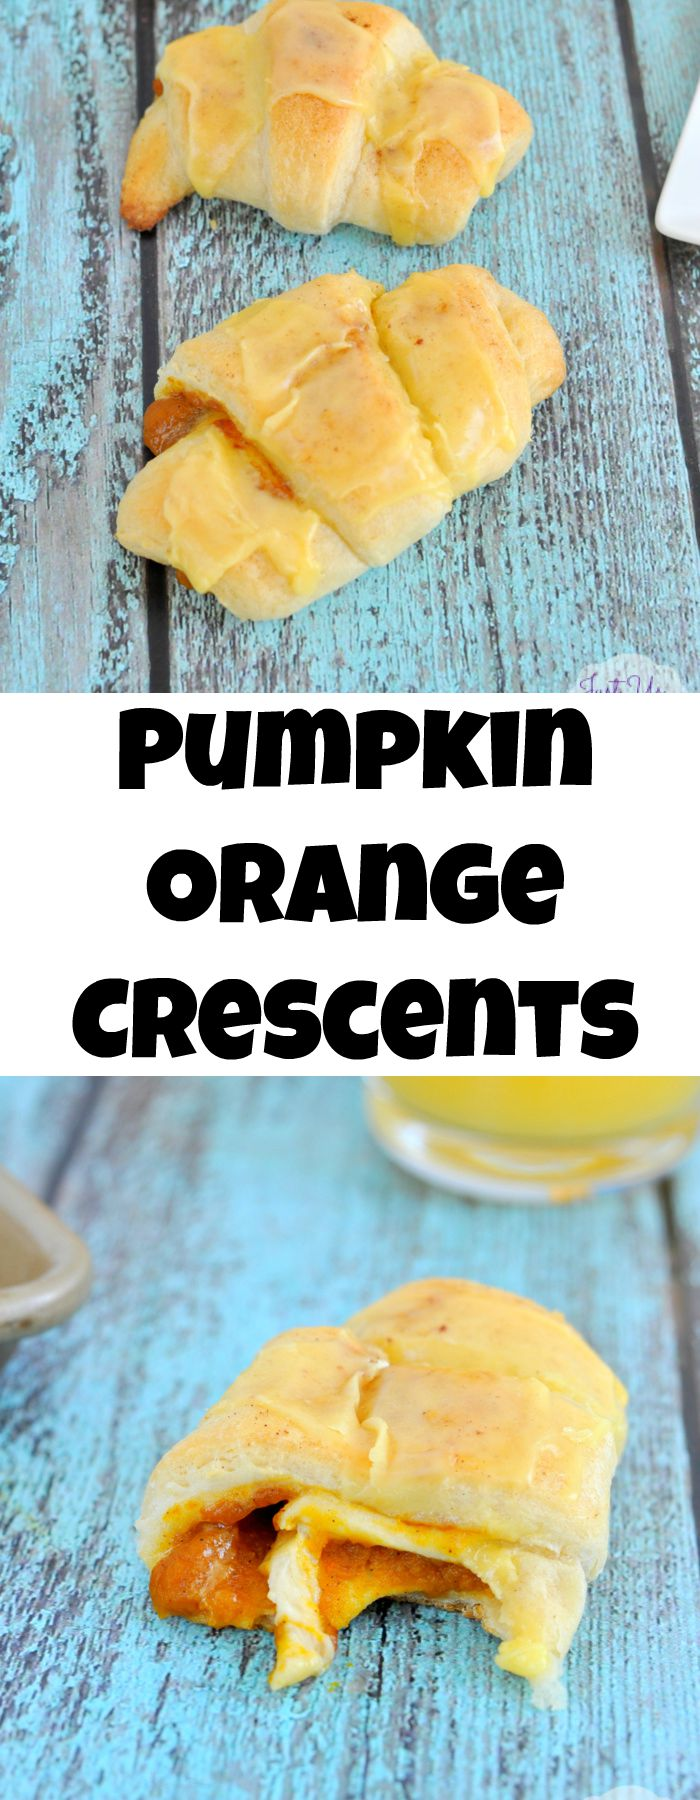 Pumpkin Orange Crescent Rolls